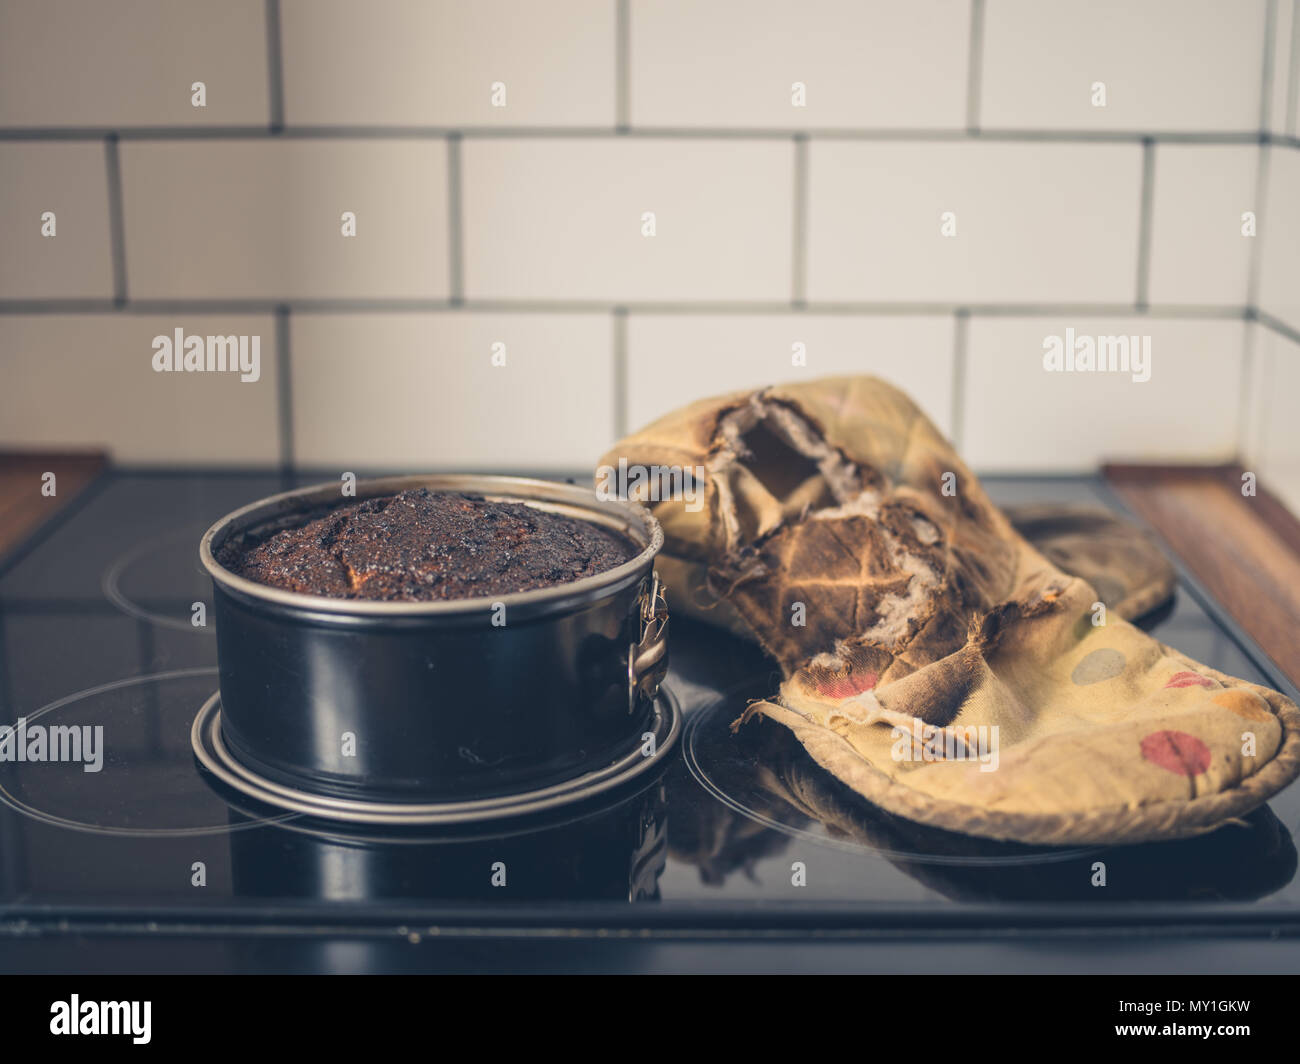 A burnt cake and a burnt oven glove on the cooker - Stock Image